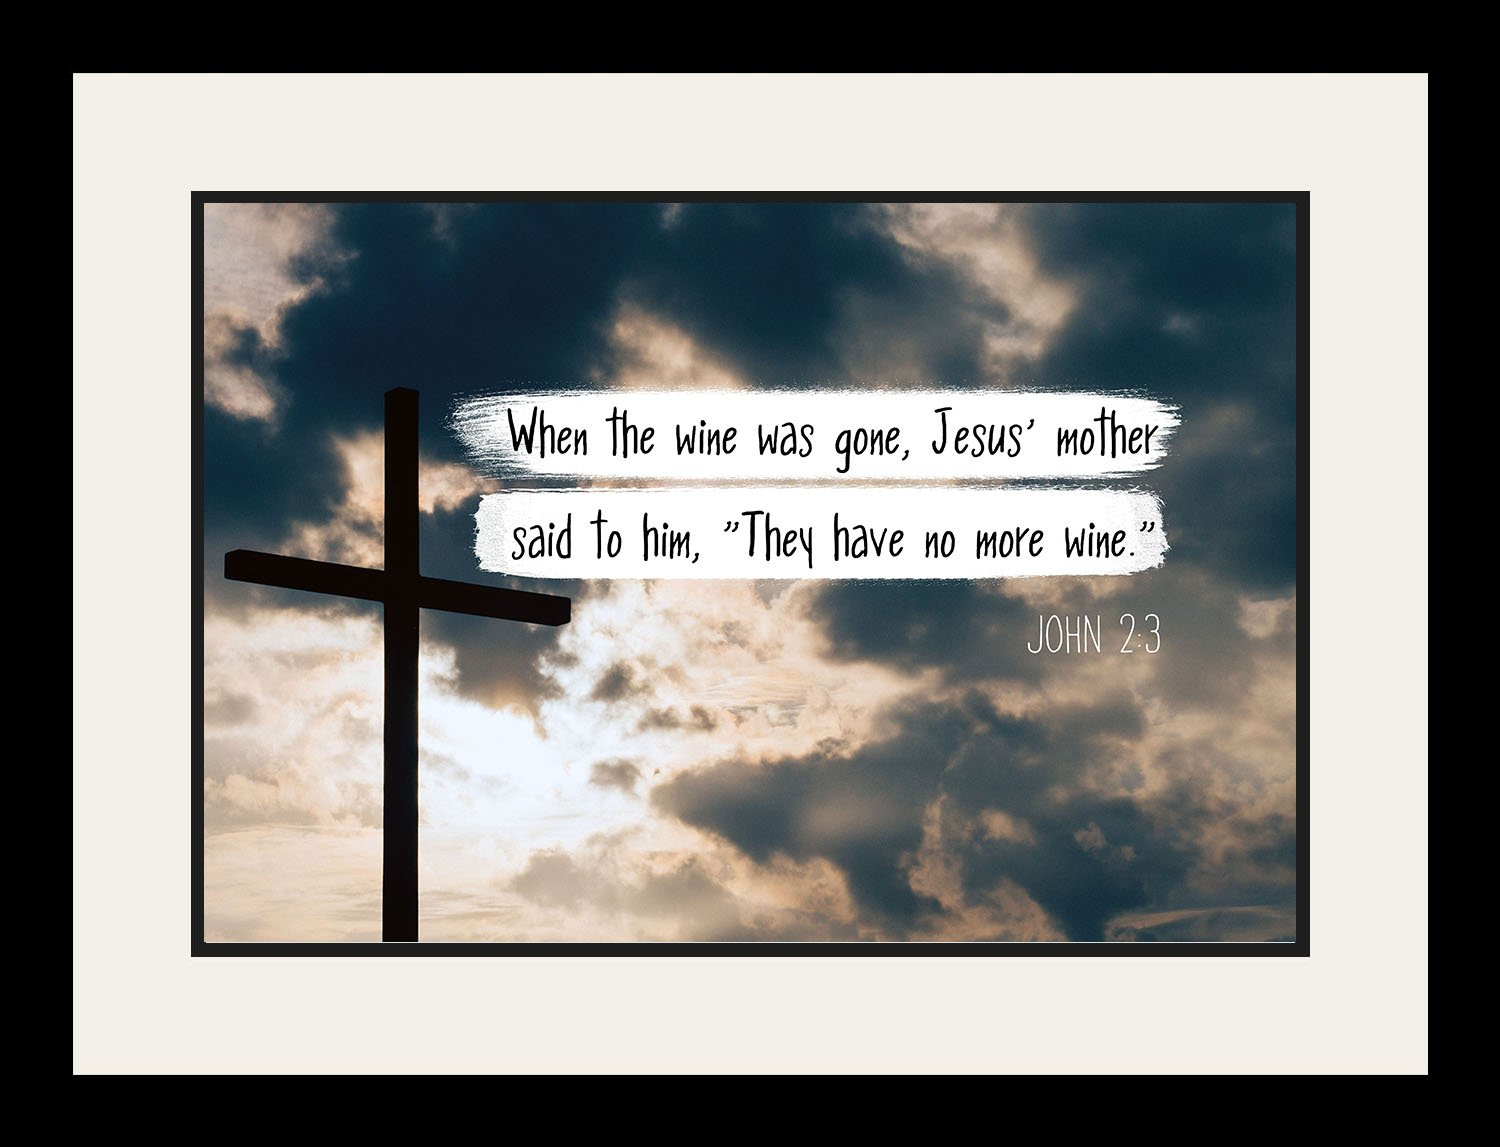 John 2:3 ''They have no more wine.'' - Christian Poster, Print, Picture or Framed Wall Art Decor - Bible Verse Collection - Religious Gift for Holidays Christmas Baptism (19x25 Framed)